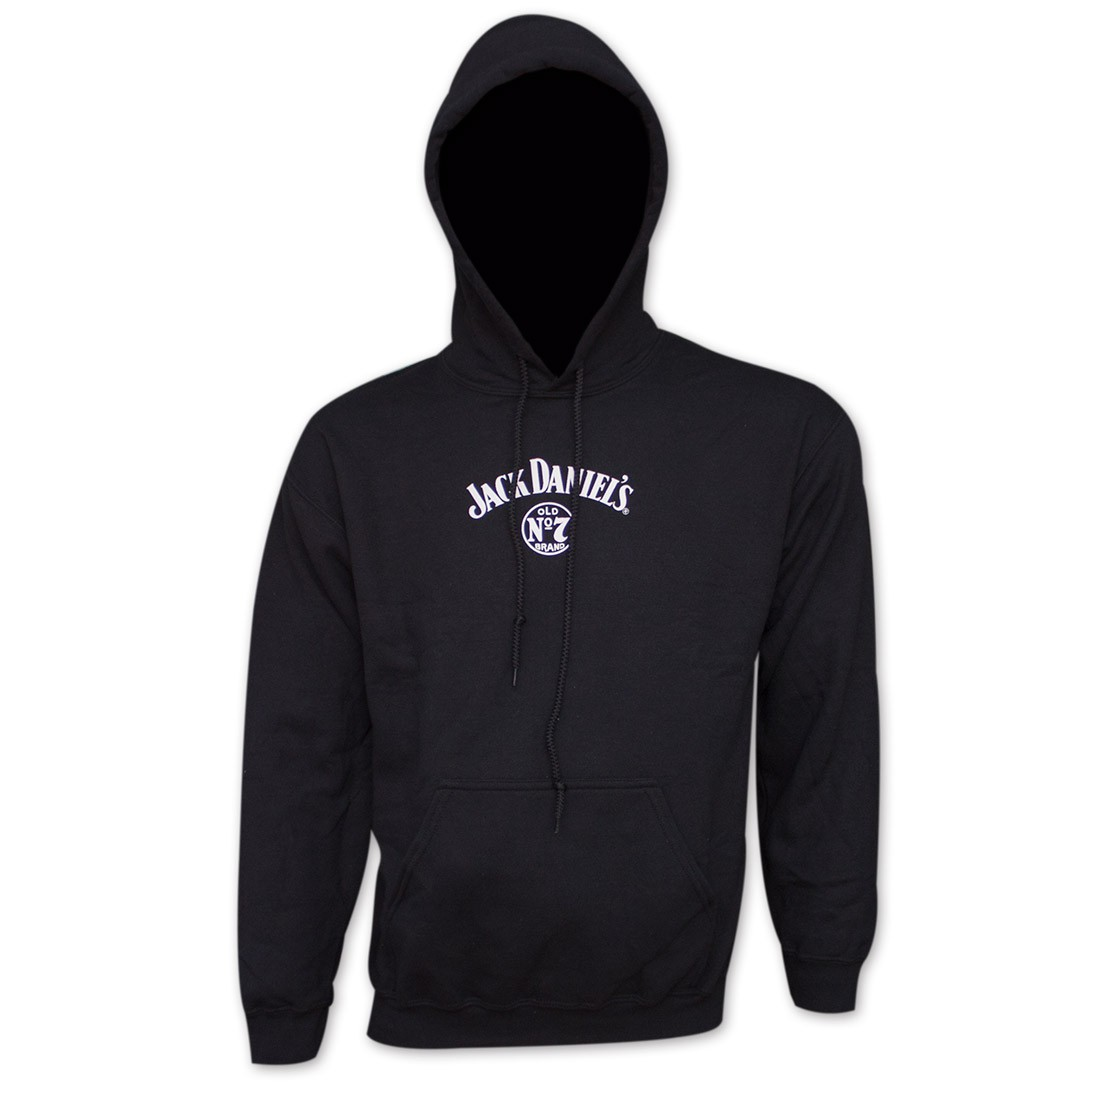 Jack Daniel's Classic Label Black Graphic Hoodie Sweatshirt